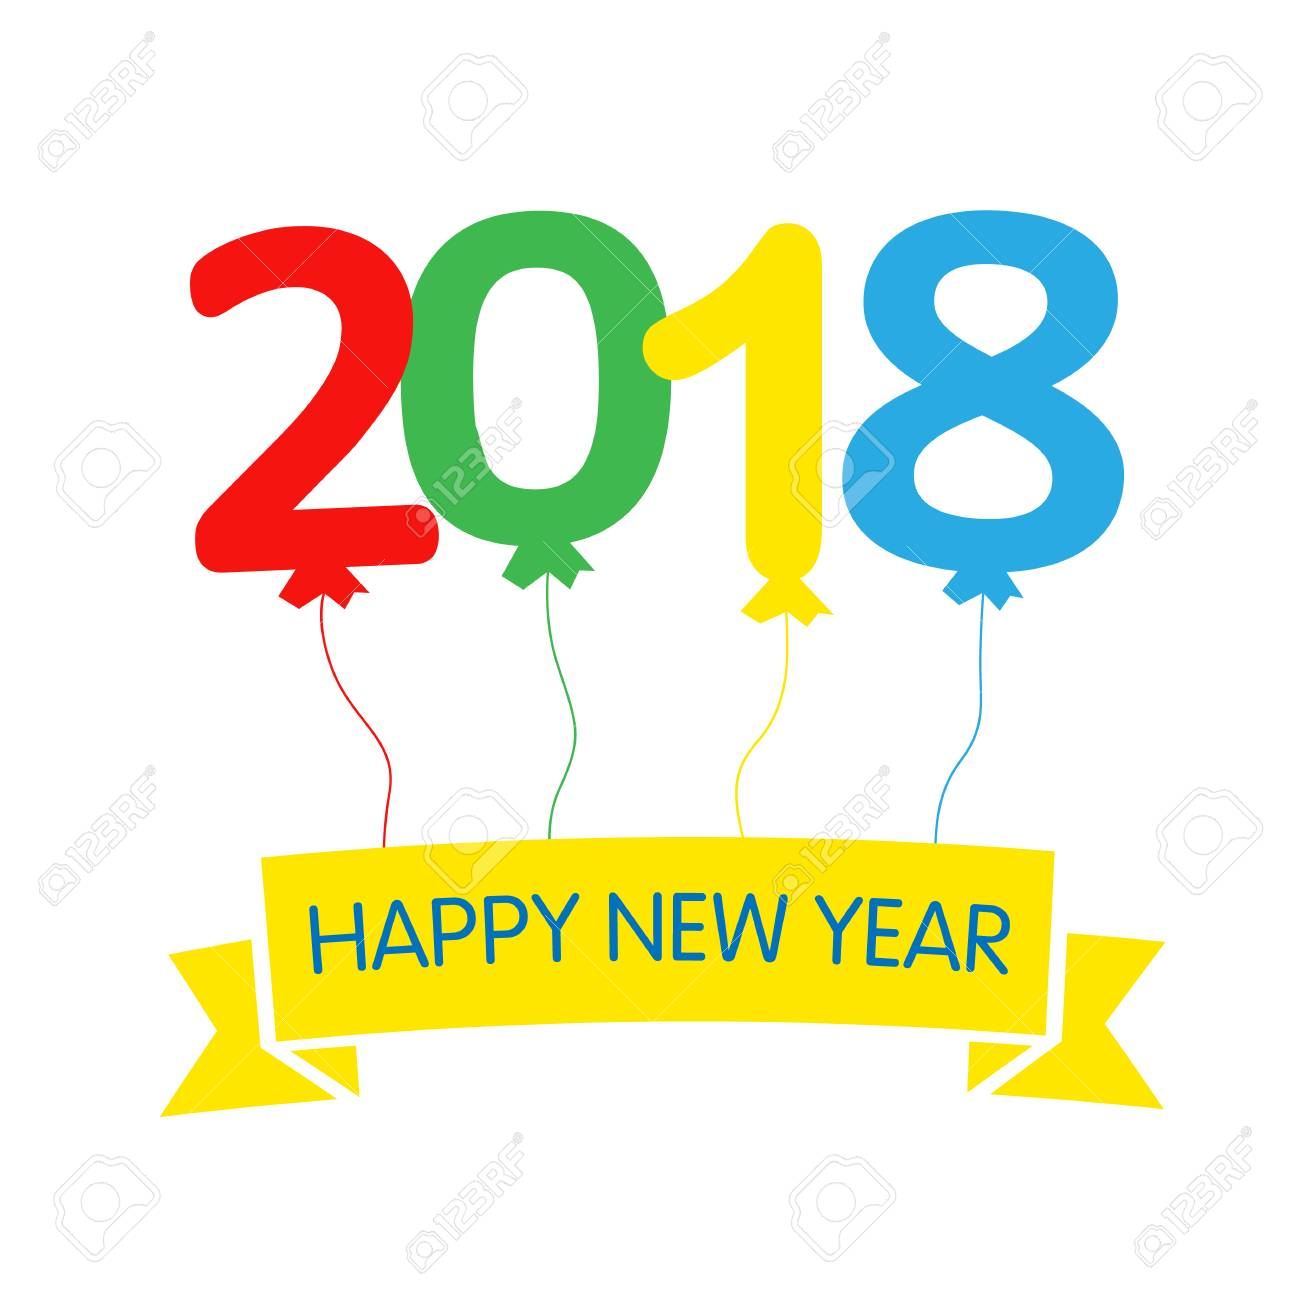 2018 Colored Balloons Happy New Year Greeting Card. Happy New ...